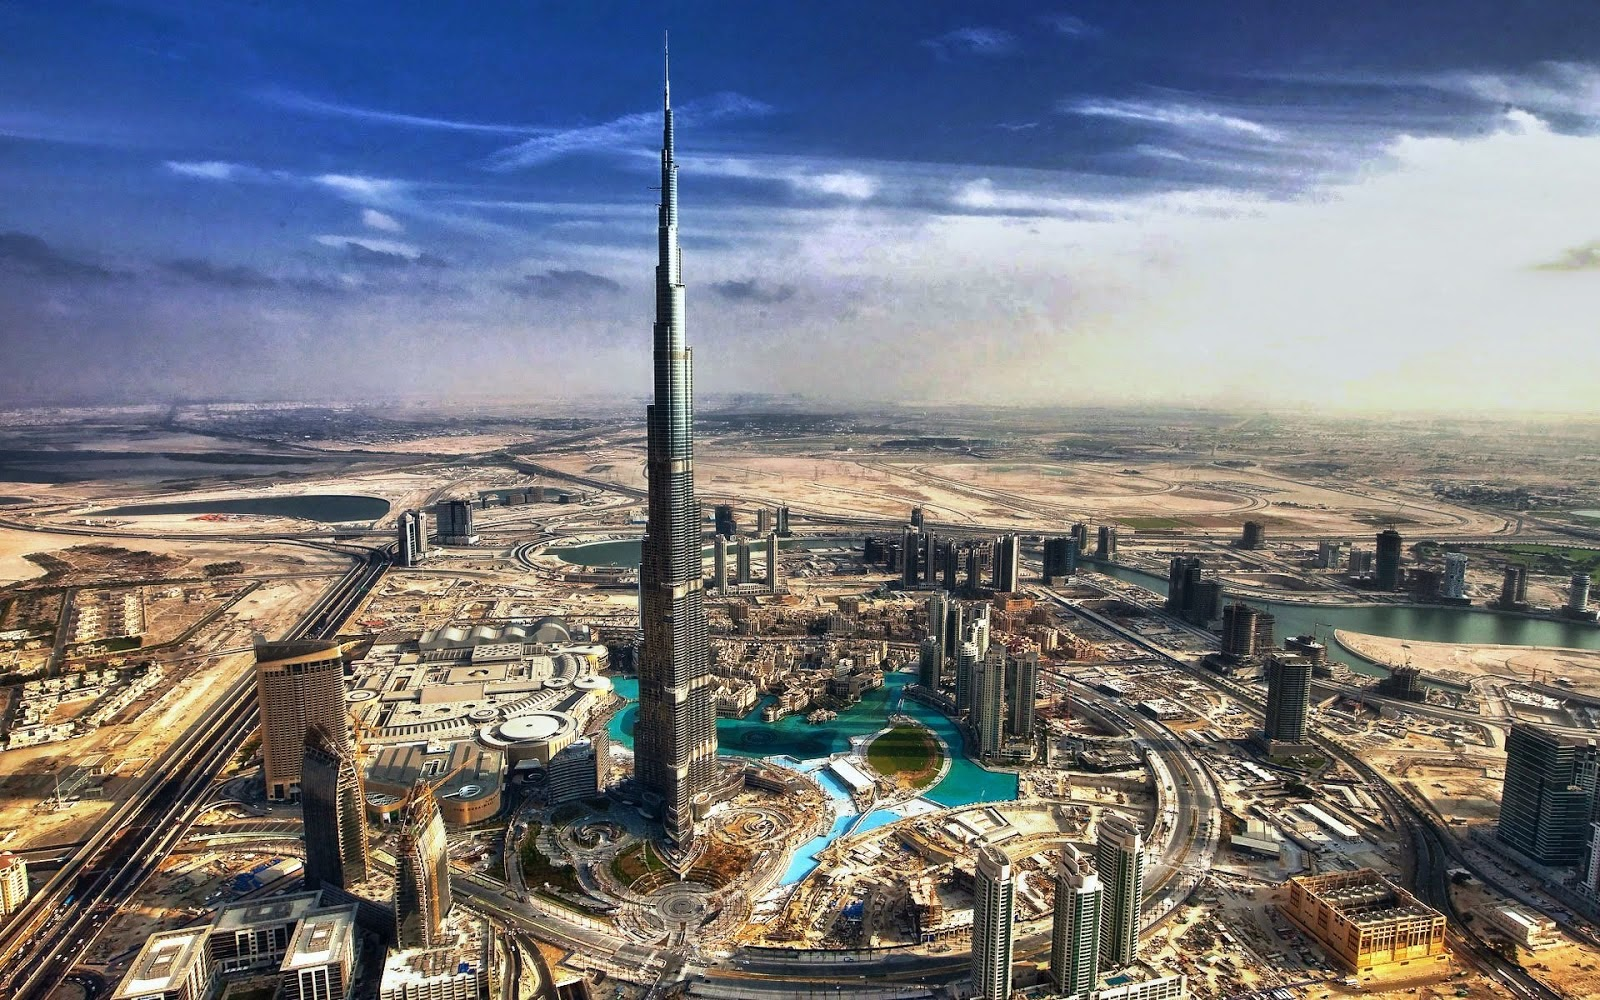 United Arab Emirates has emerged as the favourite destination for wealthy NRIs as 14 out of the 40 richest reside in this country.